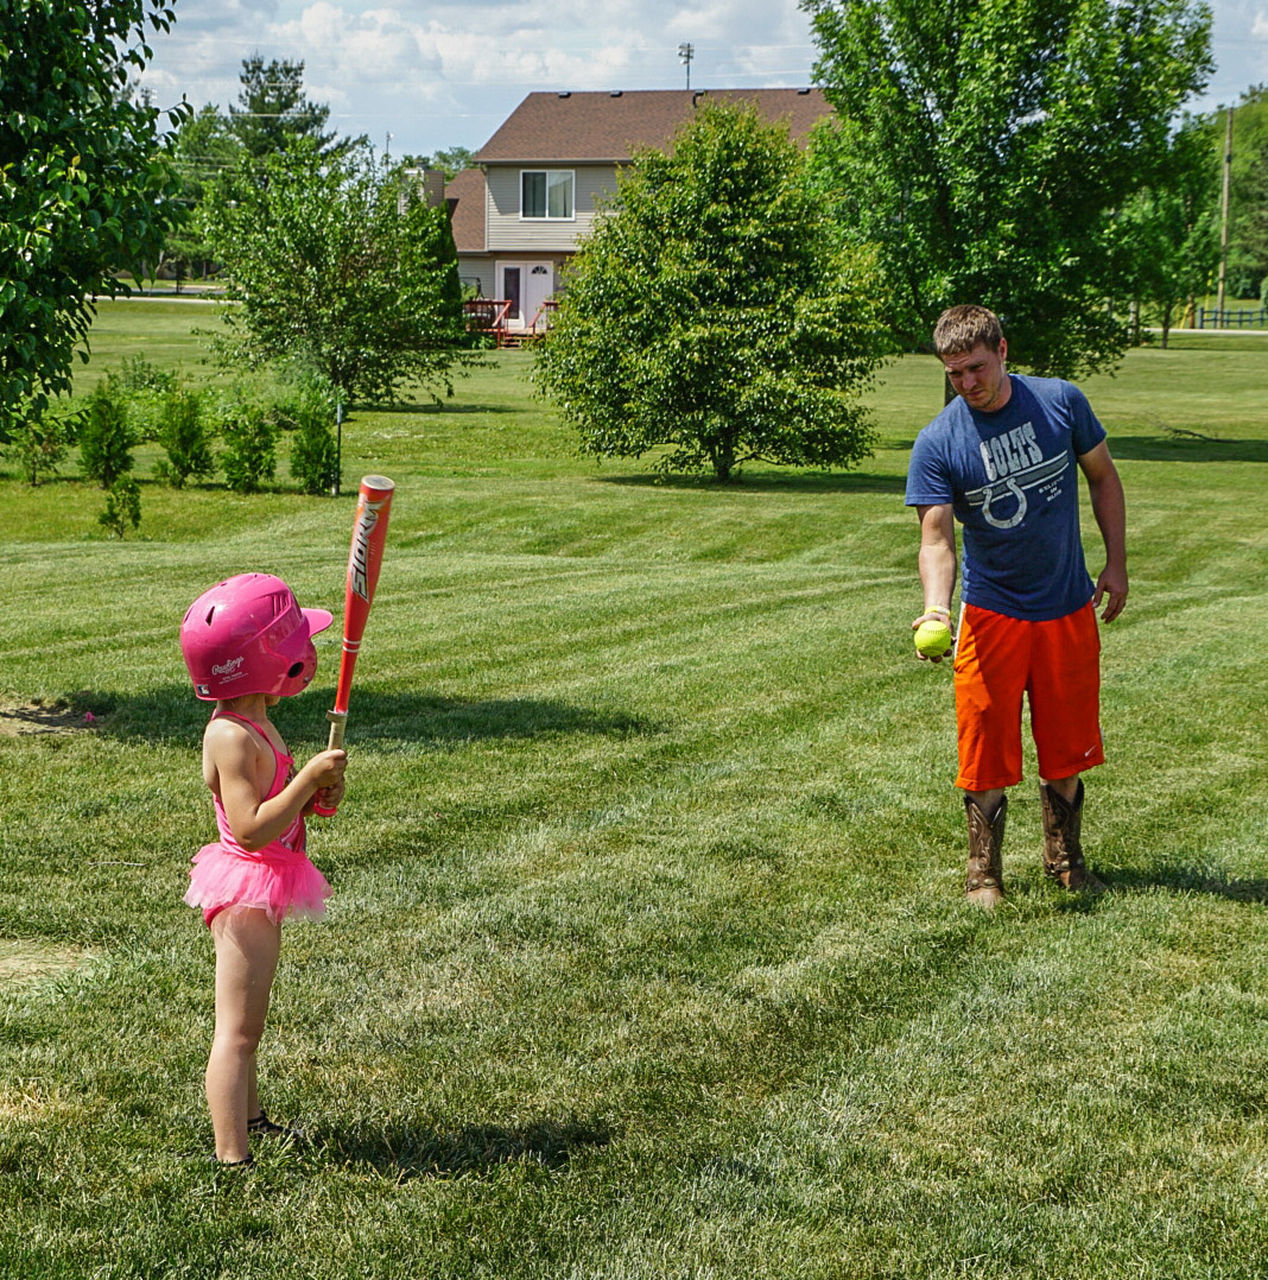 Father Playing Baseball With Daughter While Standing In Lawn